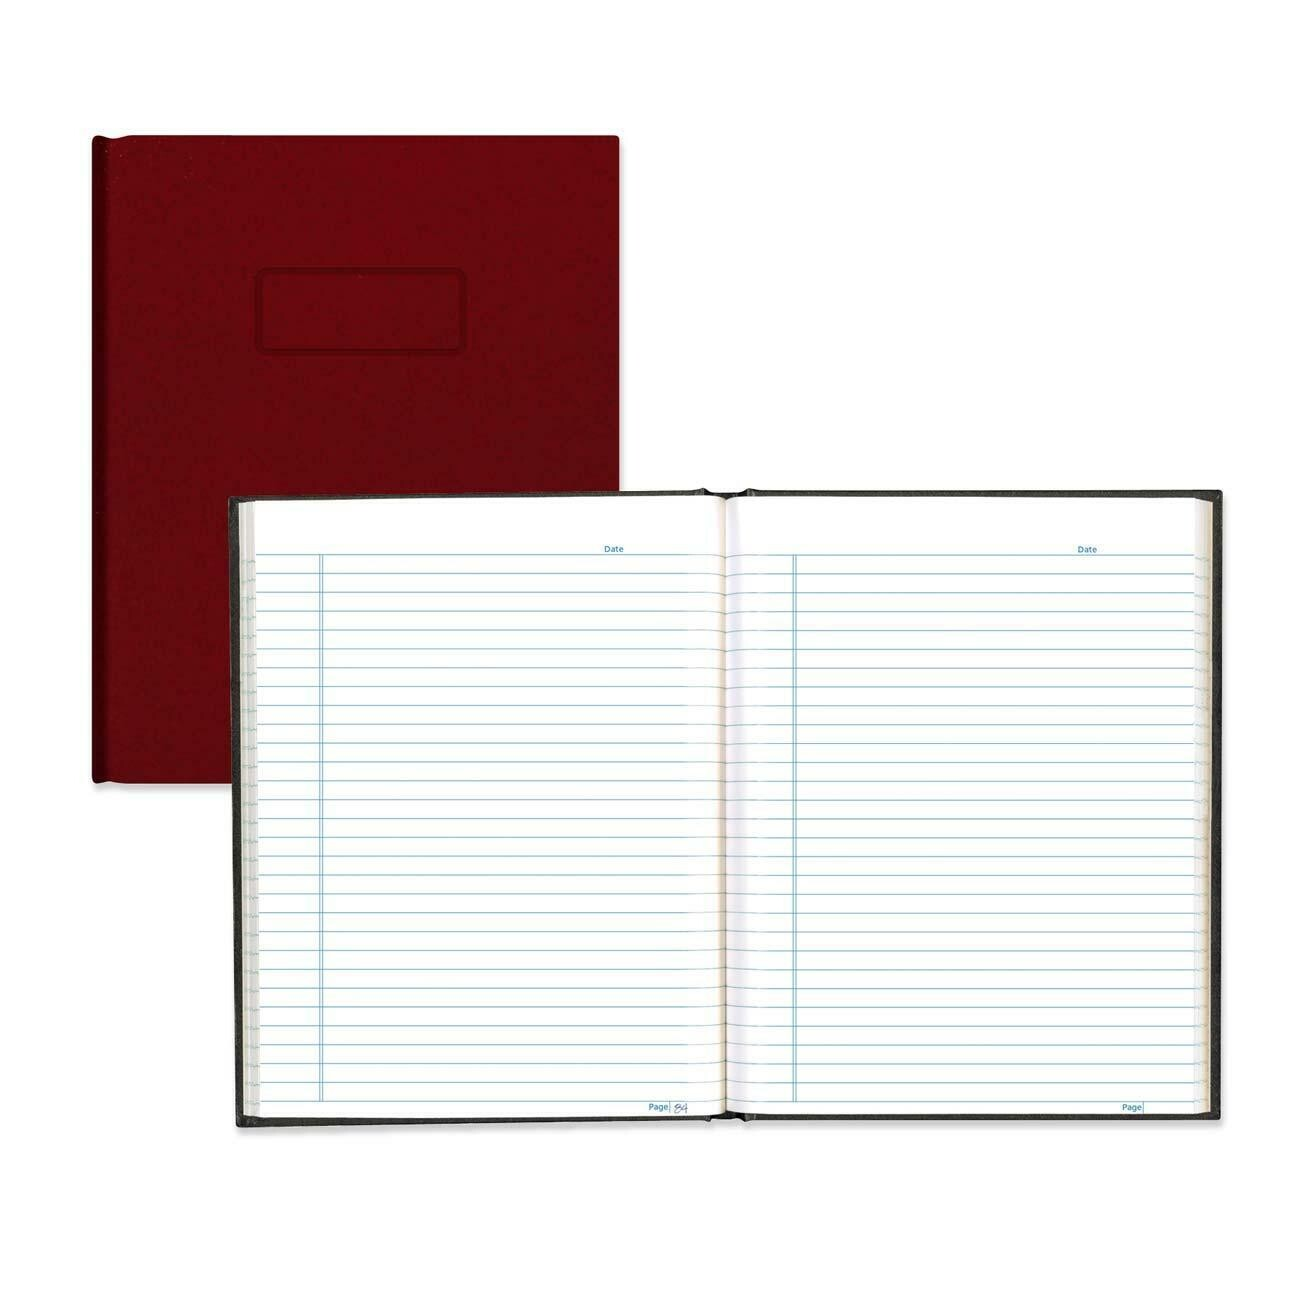 """Composition Book, Lined, Blueline Red, 192 Pages, 9 1/4"""" x 7 1/4"""""""